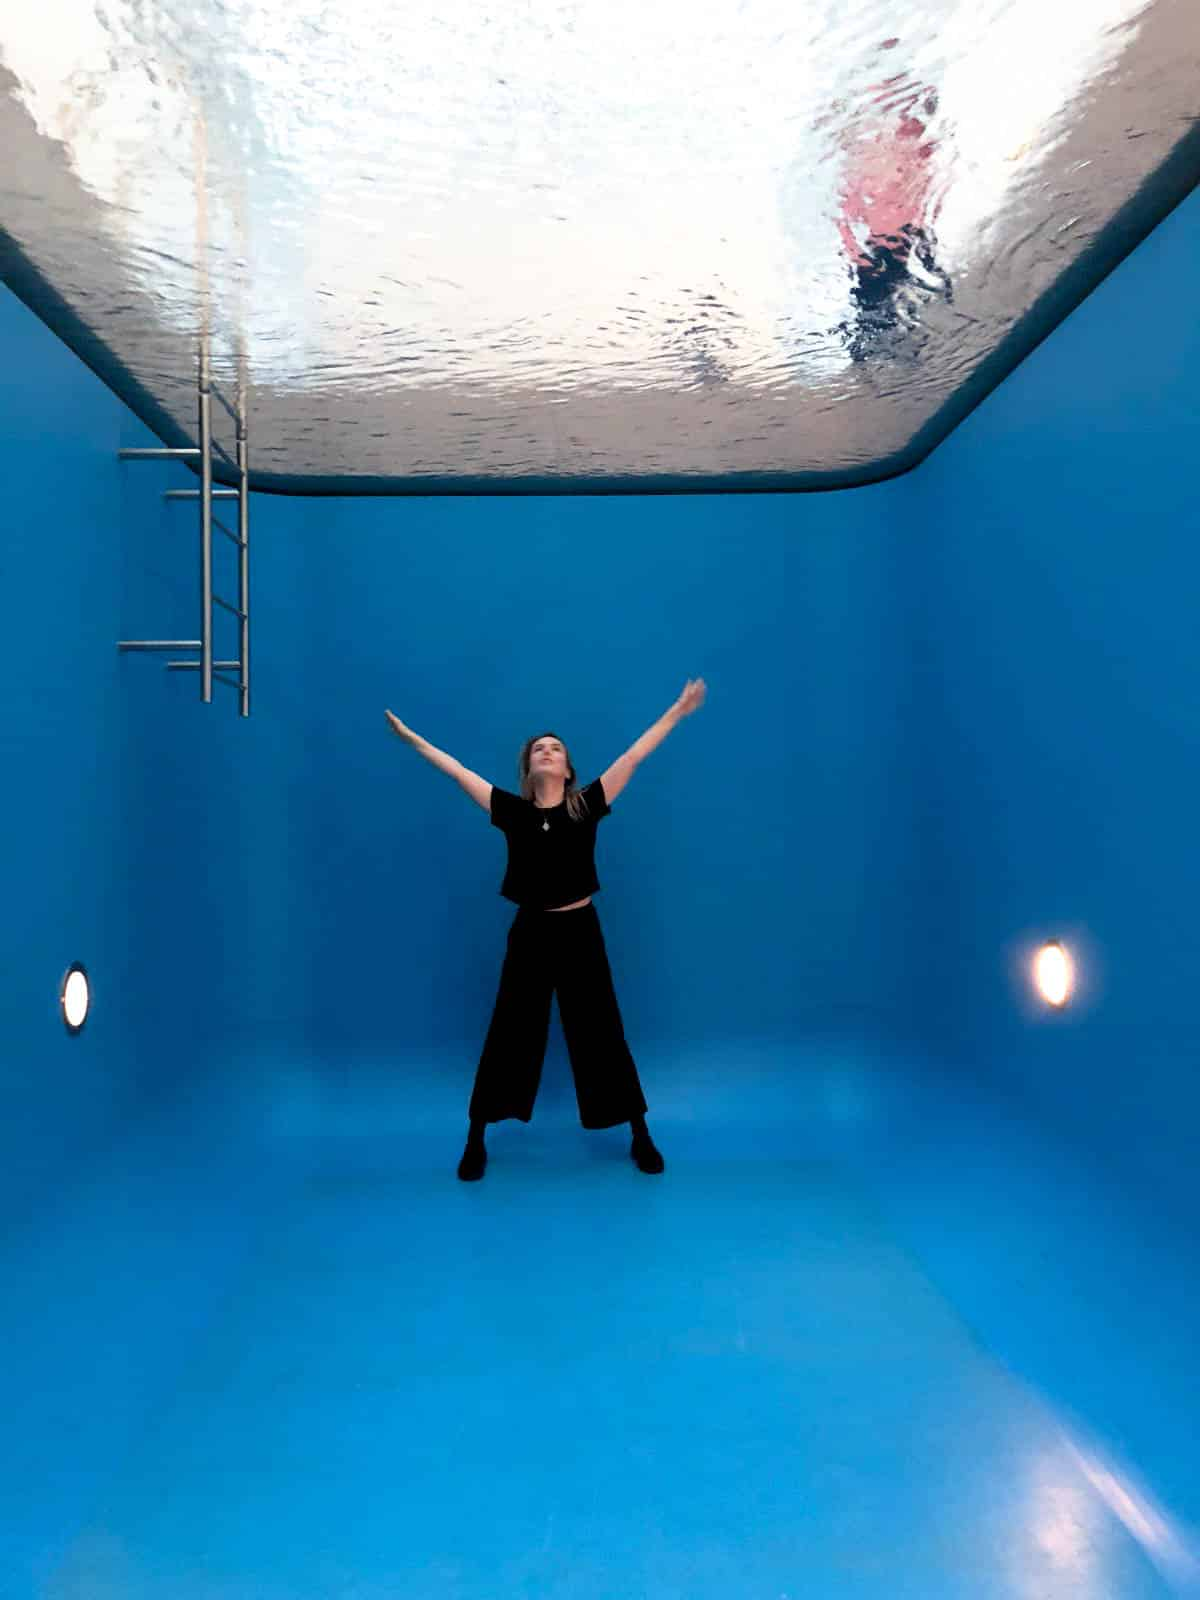 This fake swimming pool at Museum Voorlinden was created especially for the museum by Argentinian artist Leandro Erlich. It can be watched from above and from inside of the swimming pool.